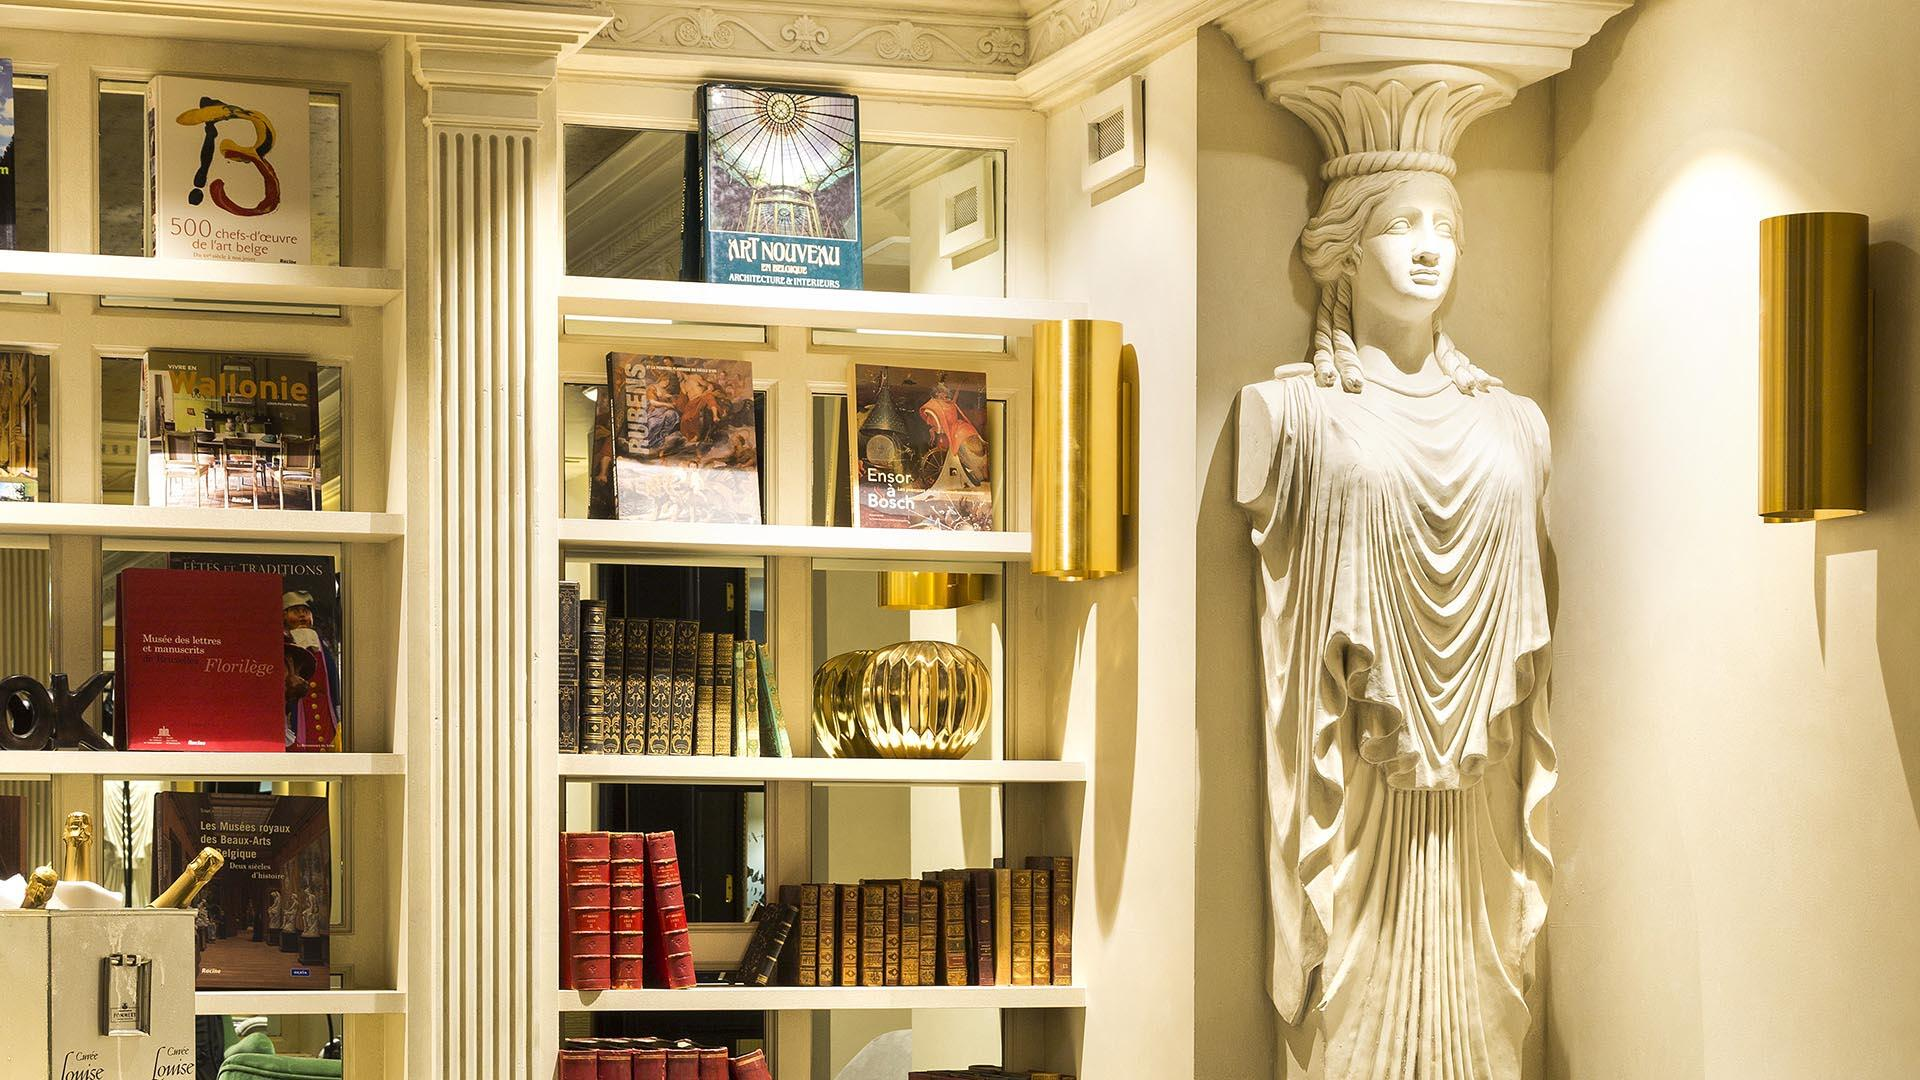 The Avenue Restaurant's Library in Avenue Louise Brussels